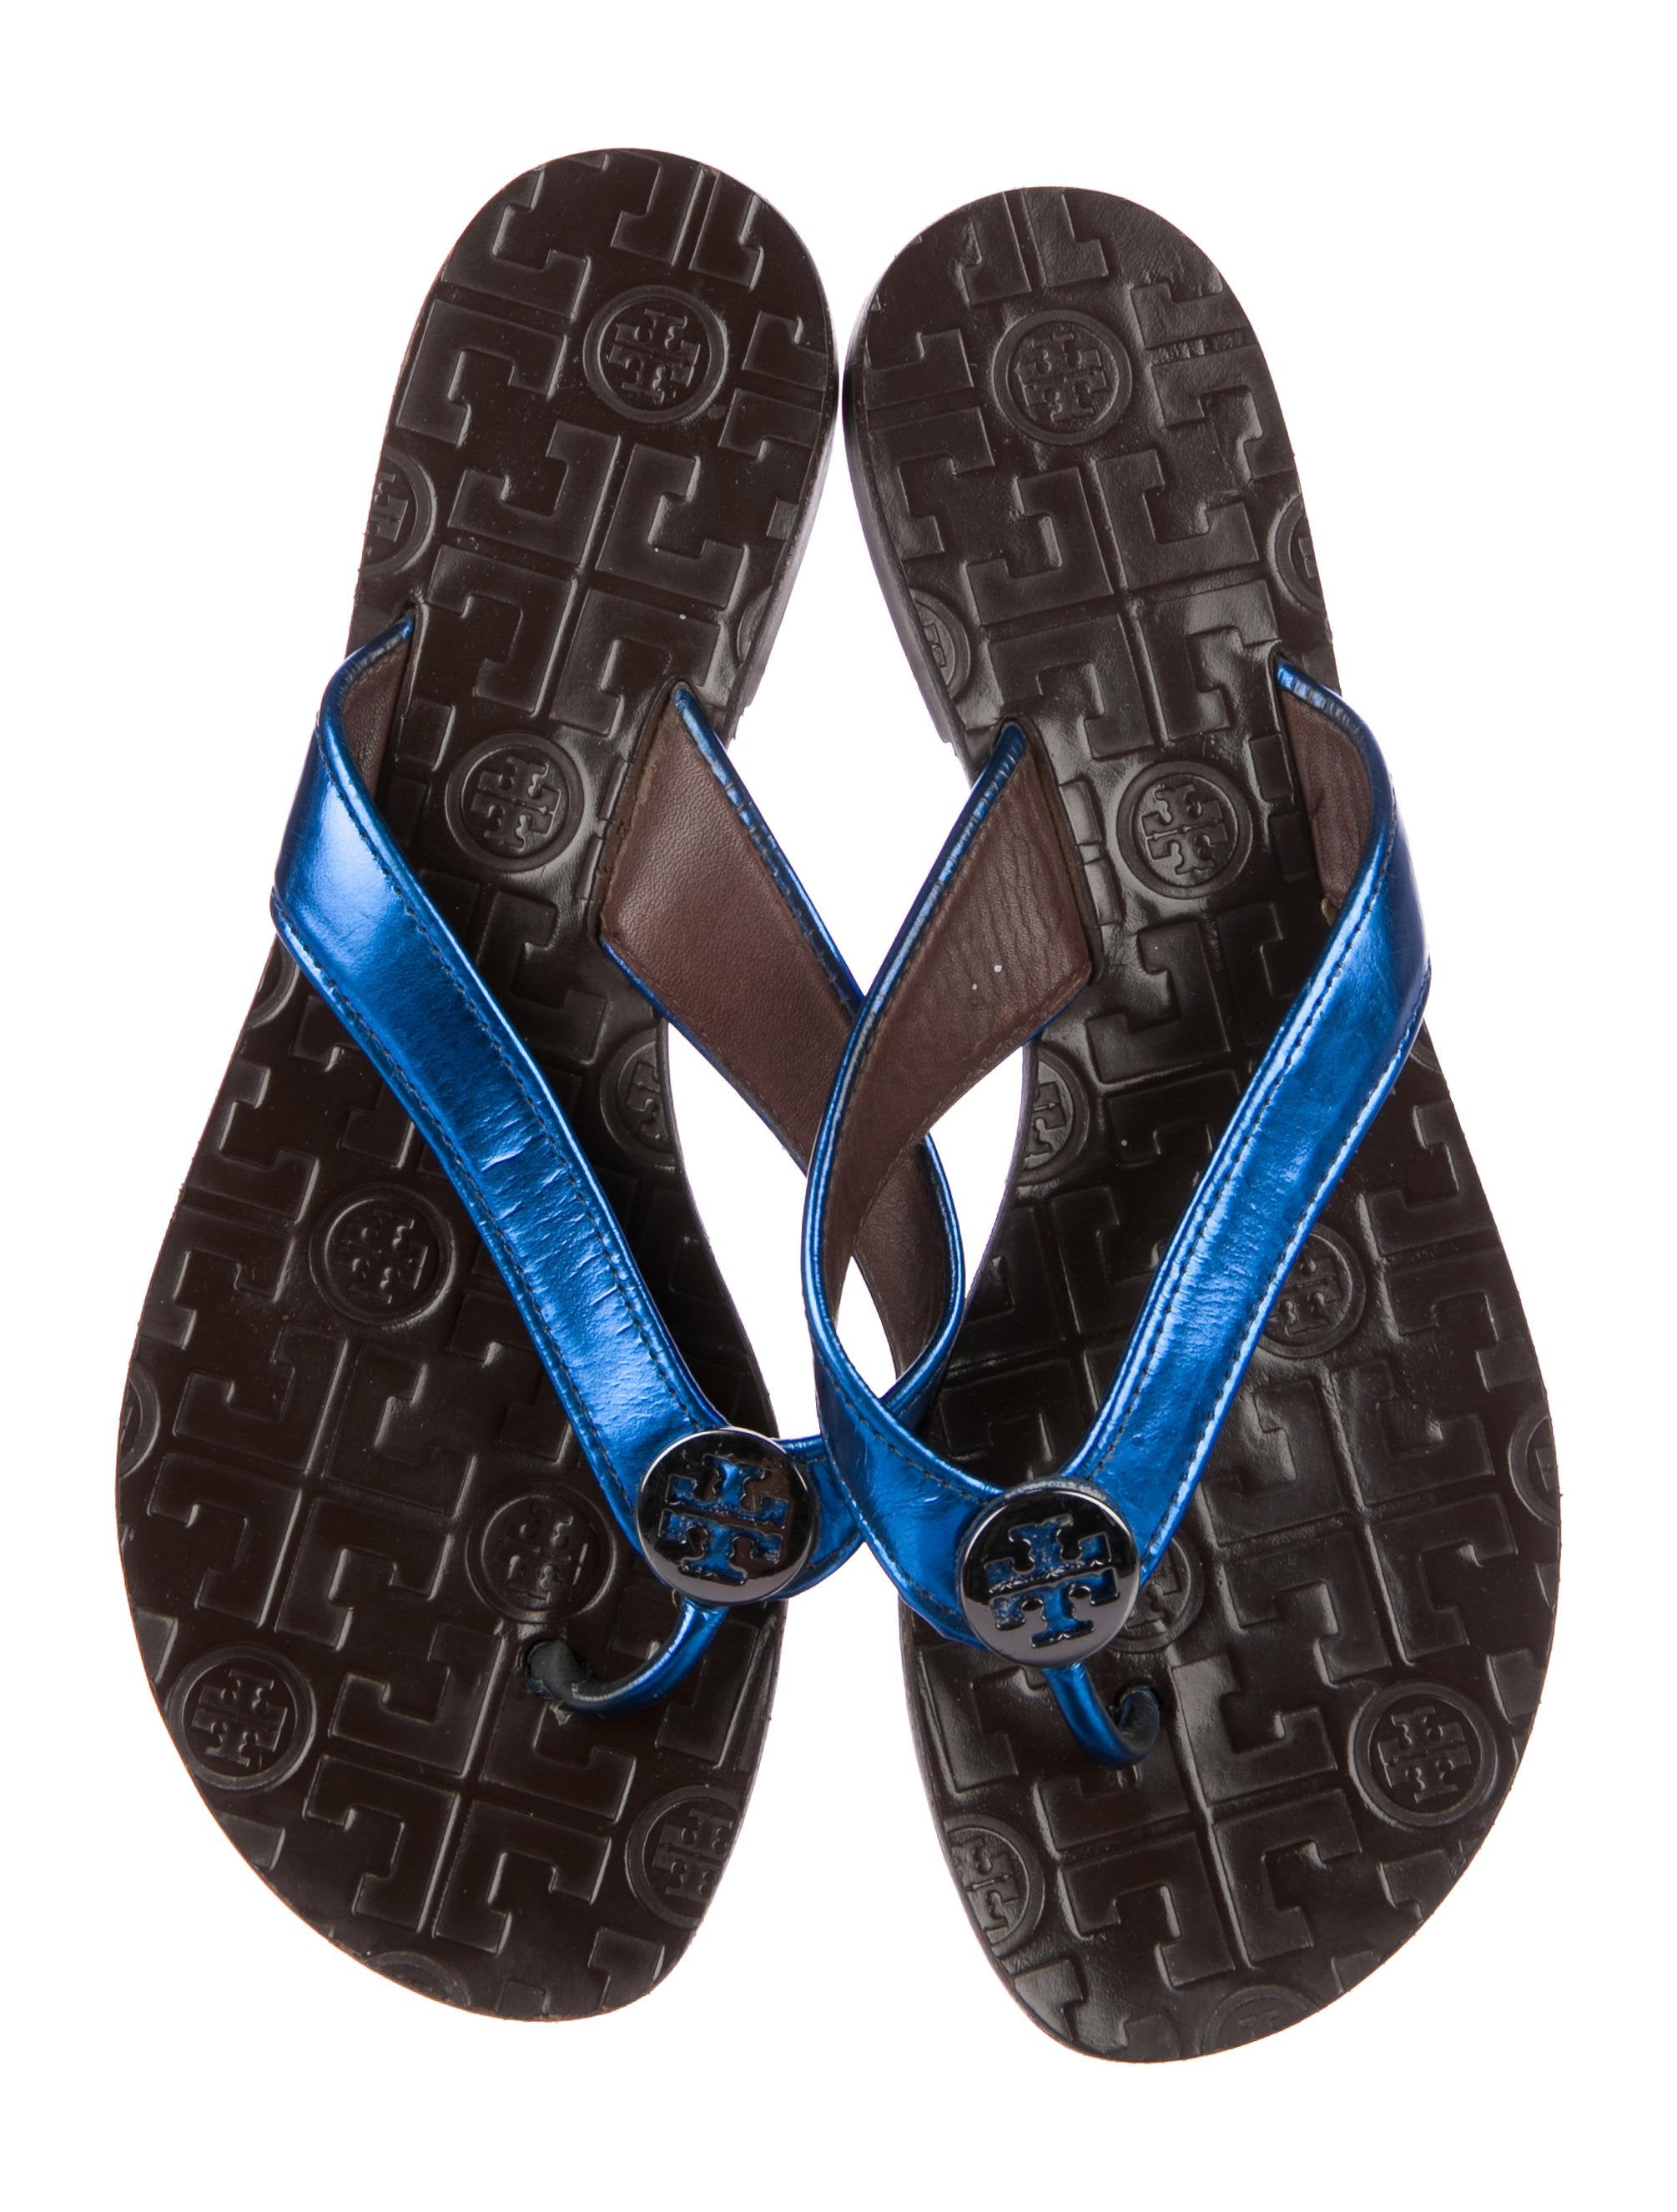 75525c8ce2850 Tory Burch Thora Thong Sandals - Shoes - WTO138069